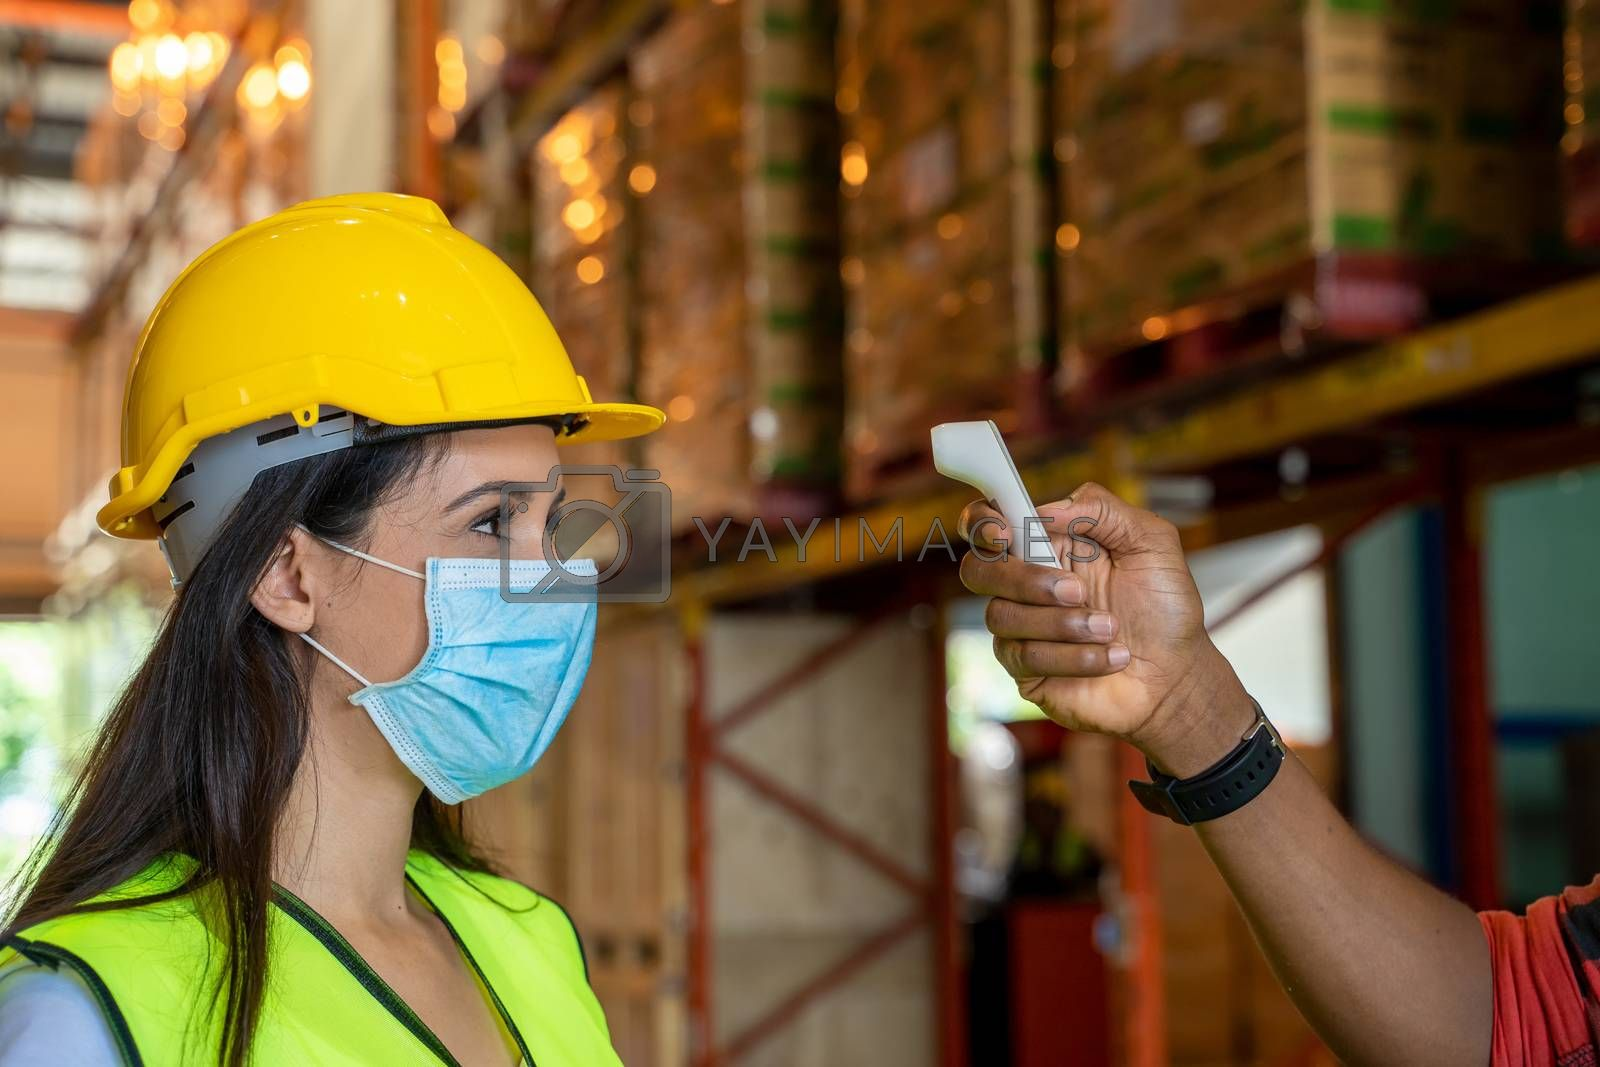 Warehouse worker,Body temperature check, prevent virus Concepts in preventing contagious diseases. Coronavirus [Covid-19],Medical infrared thermometer use body.